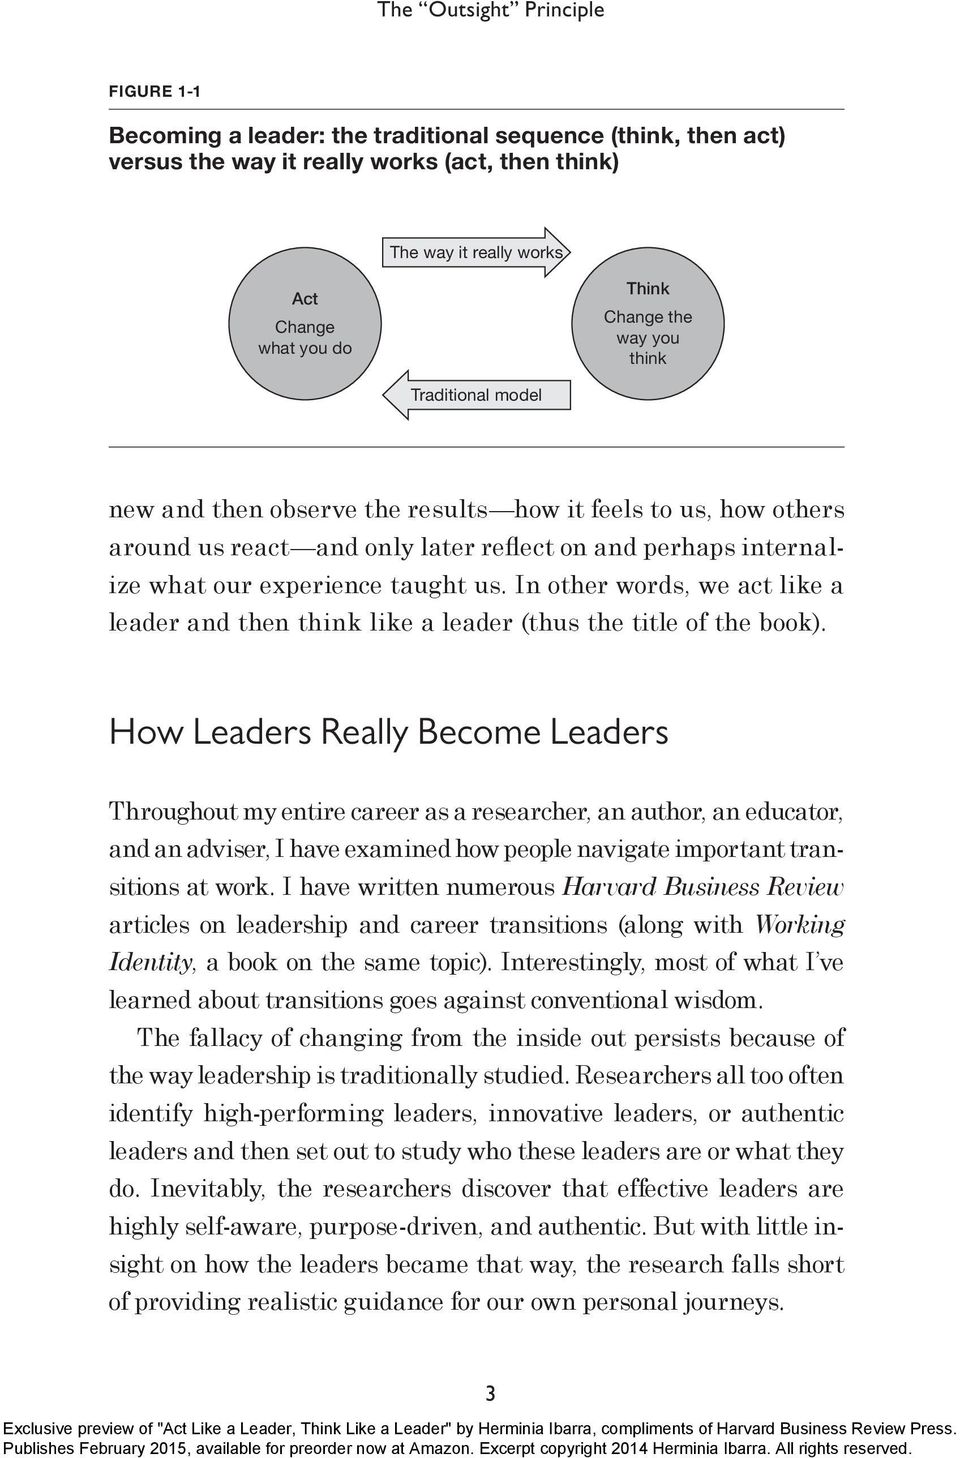 us. In other words, we act like a leader and then think like a leader (thus the title of the book).